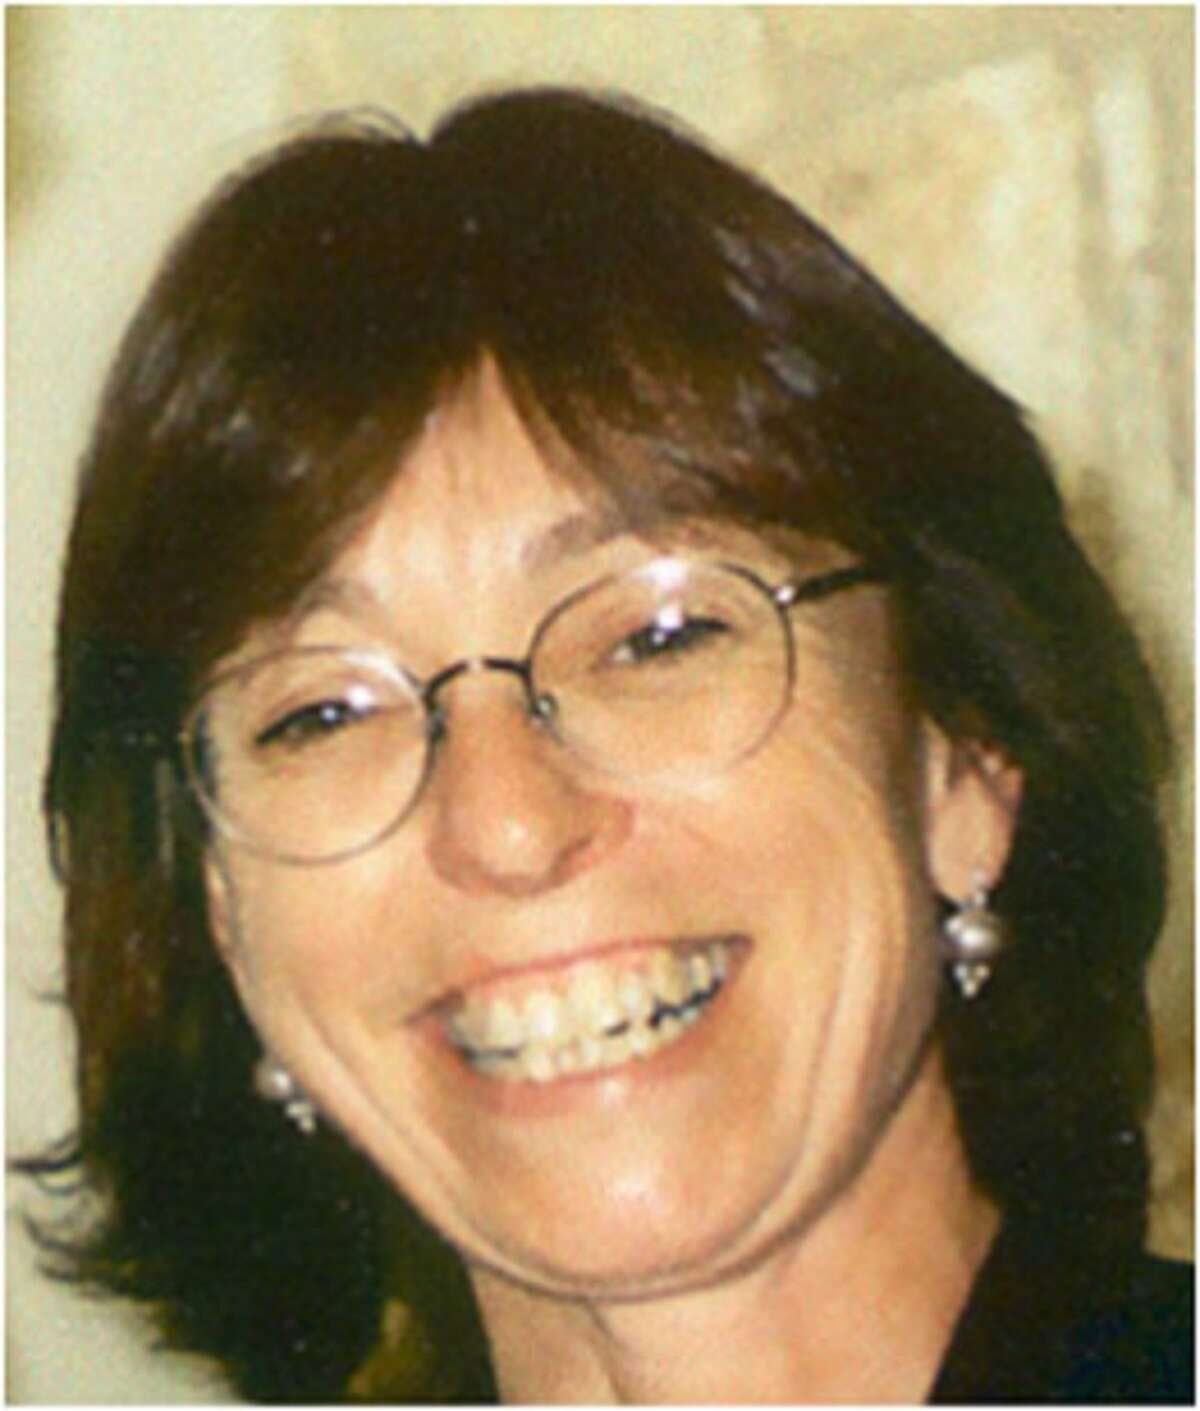 Linda Muegge was found dead inside a torched home in Fredericksburg in 2007. >>Click to see unsolved mysteries in Houston's suburbs, Houston and central Texas.